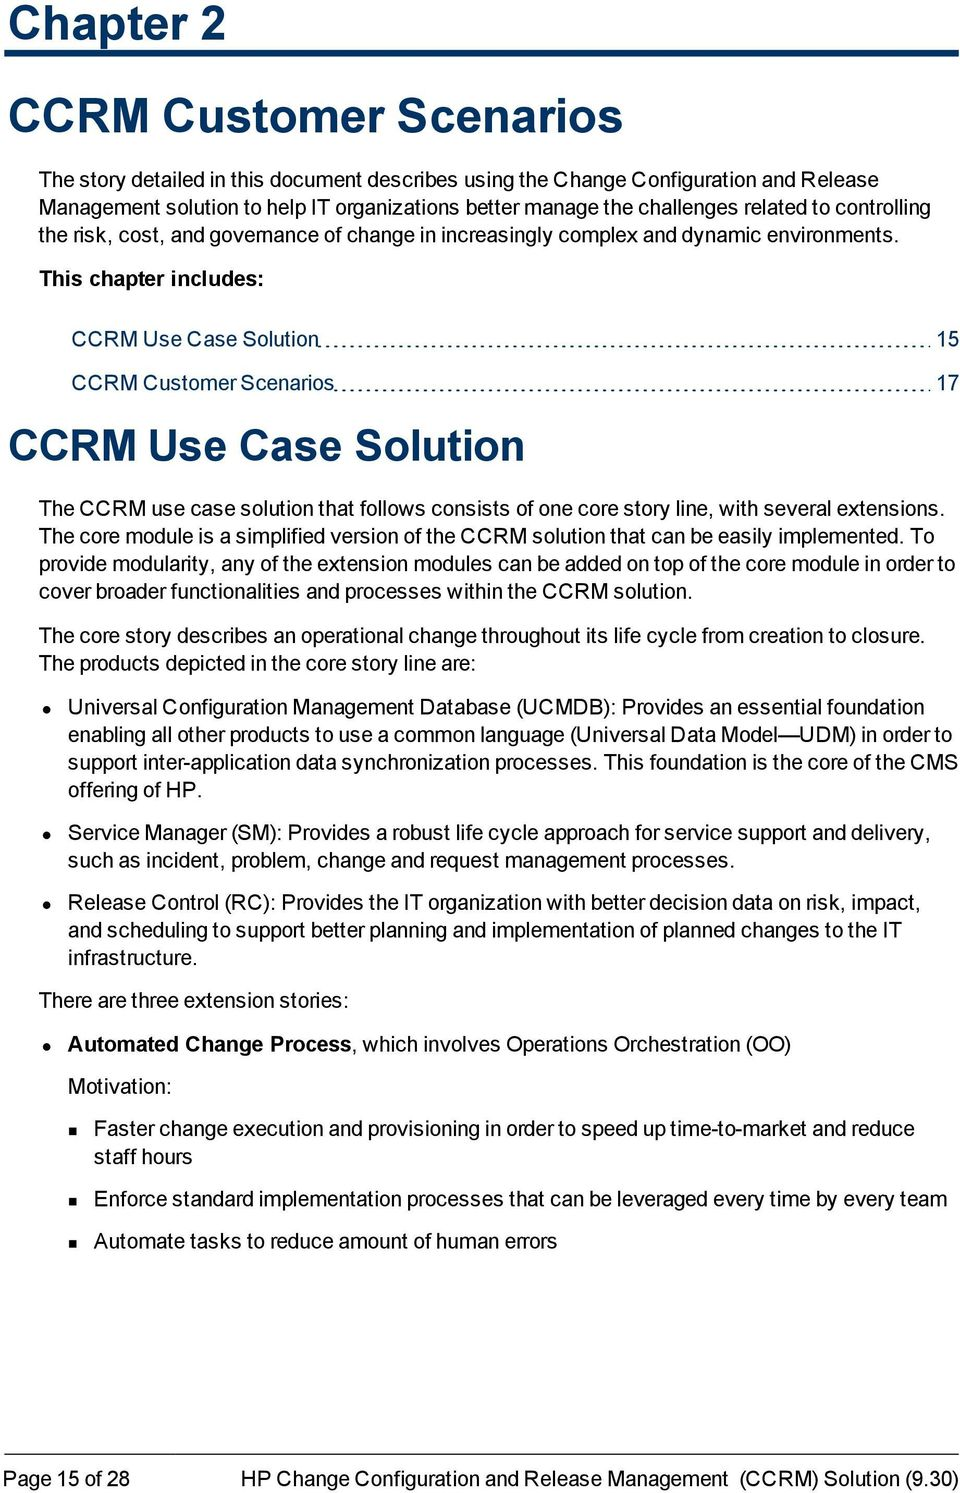 This chapter includes: CCRM Use Case Solution 15 CCRM Customer Scenarios 17 CCRM Use Case Solution The CCRM use case solution that follows consists of one core story line, with several extensions.